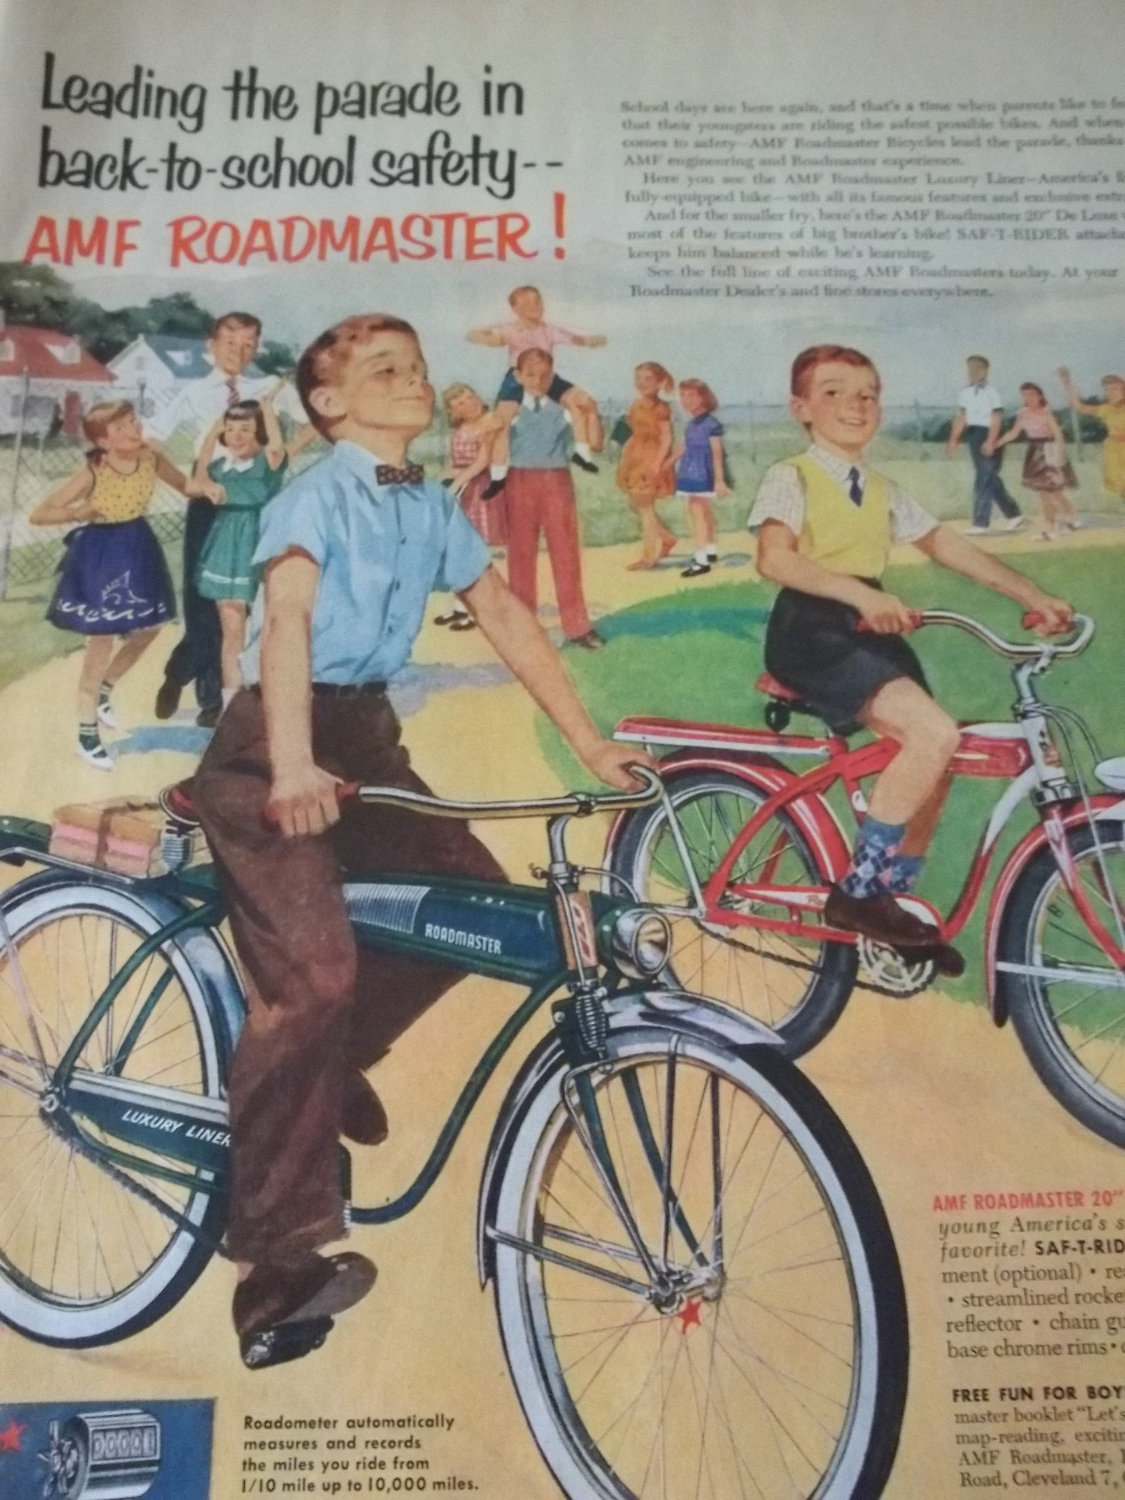 an AMF Roadmaster will get you to and from school